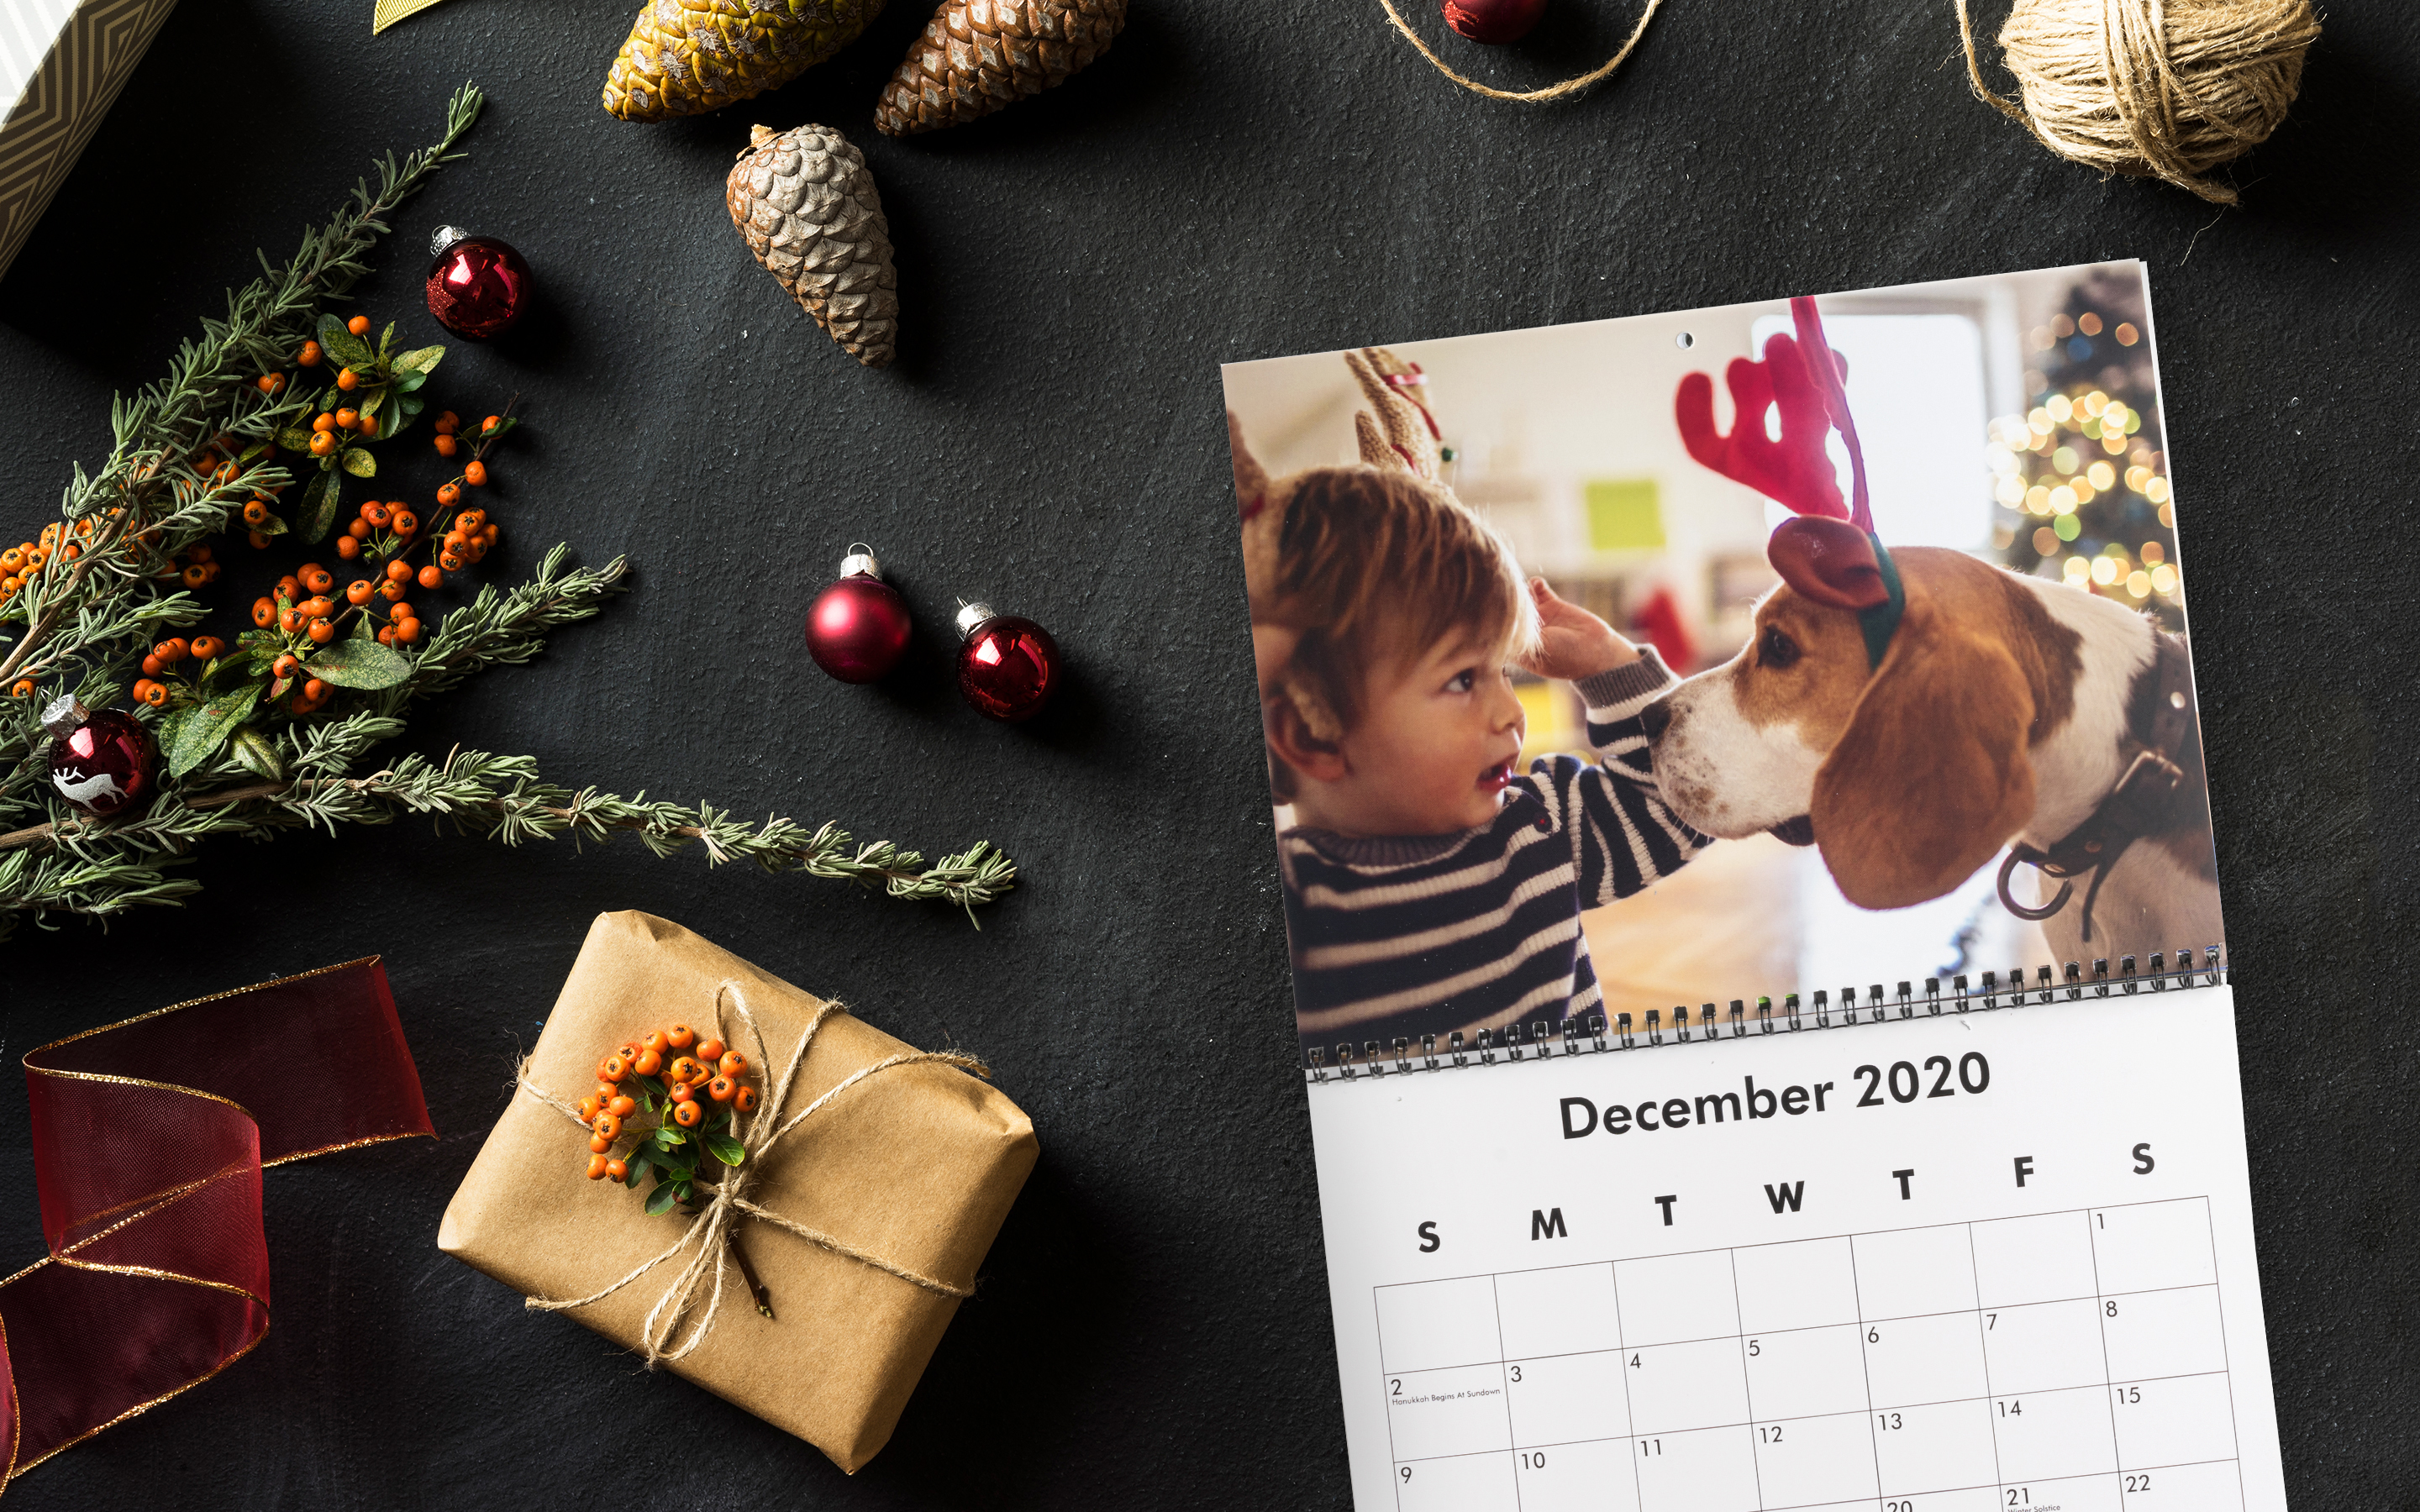 Calendar with photo of baby boy and basset hound